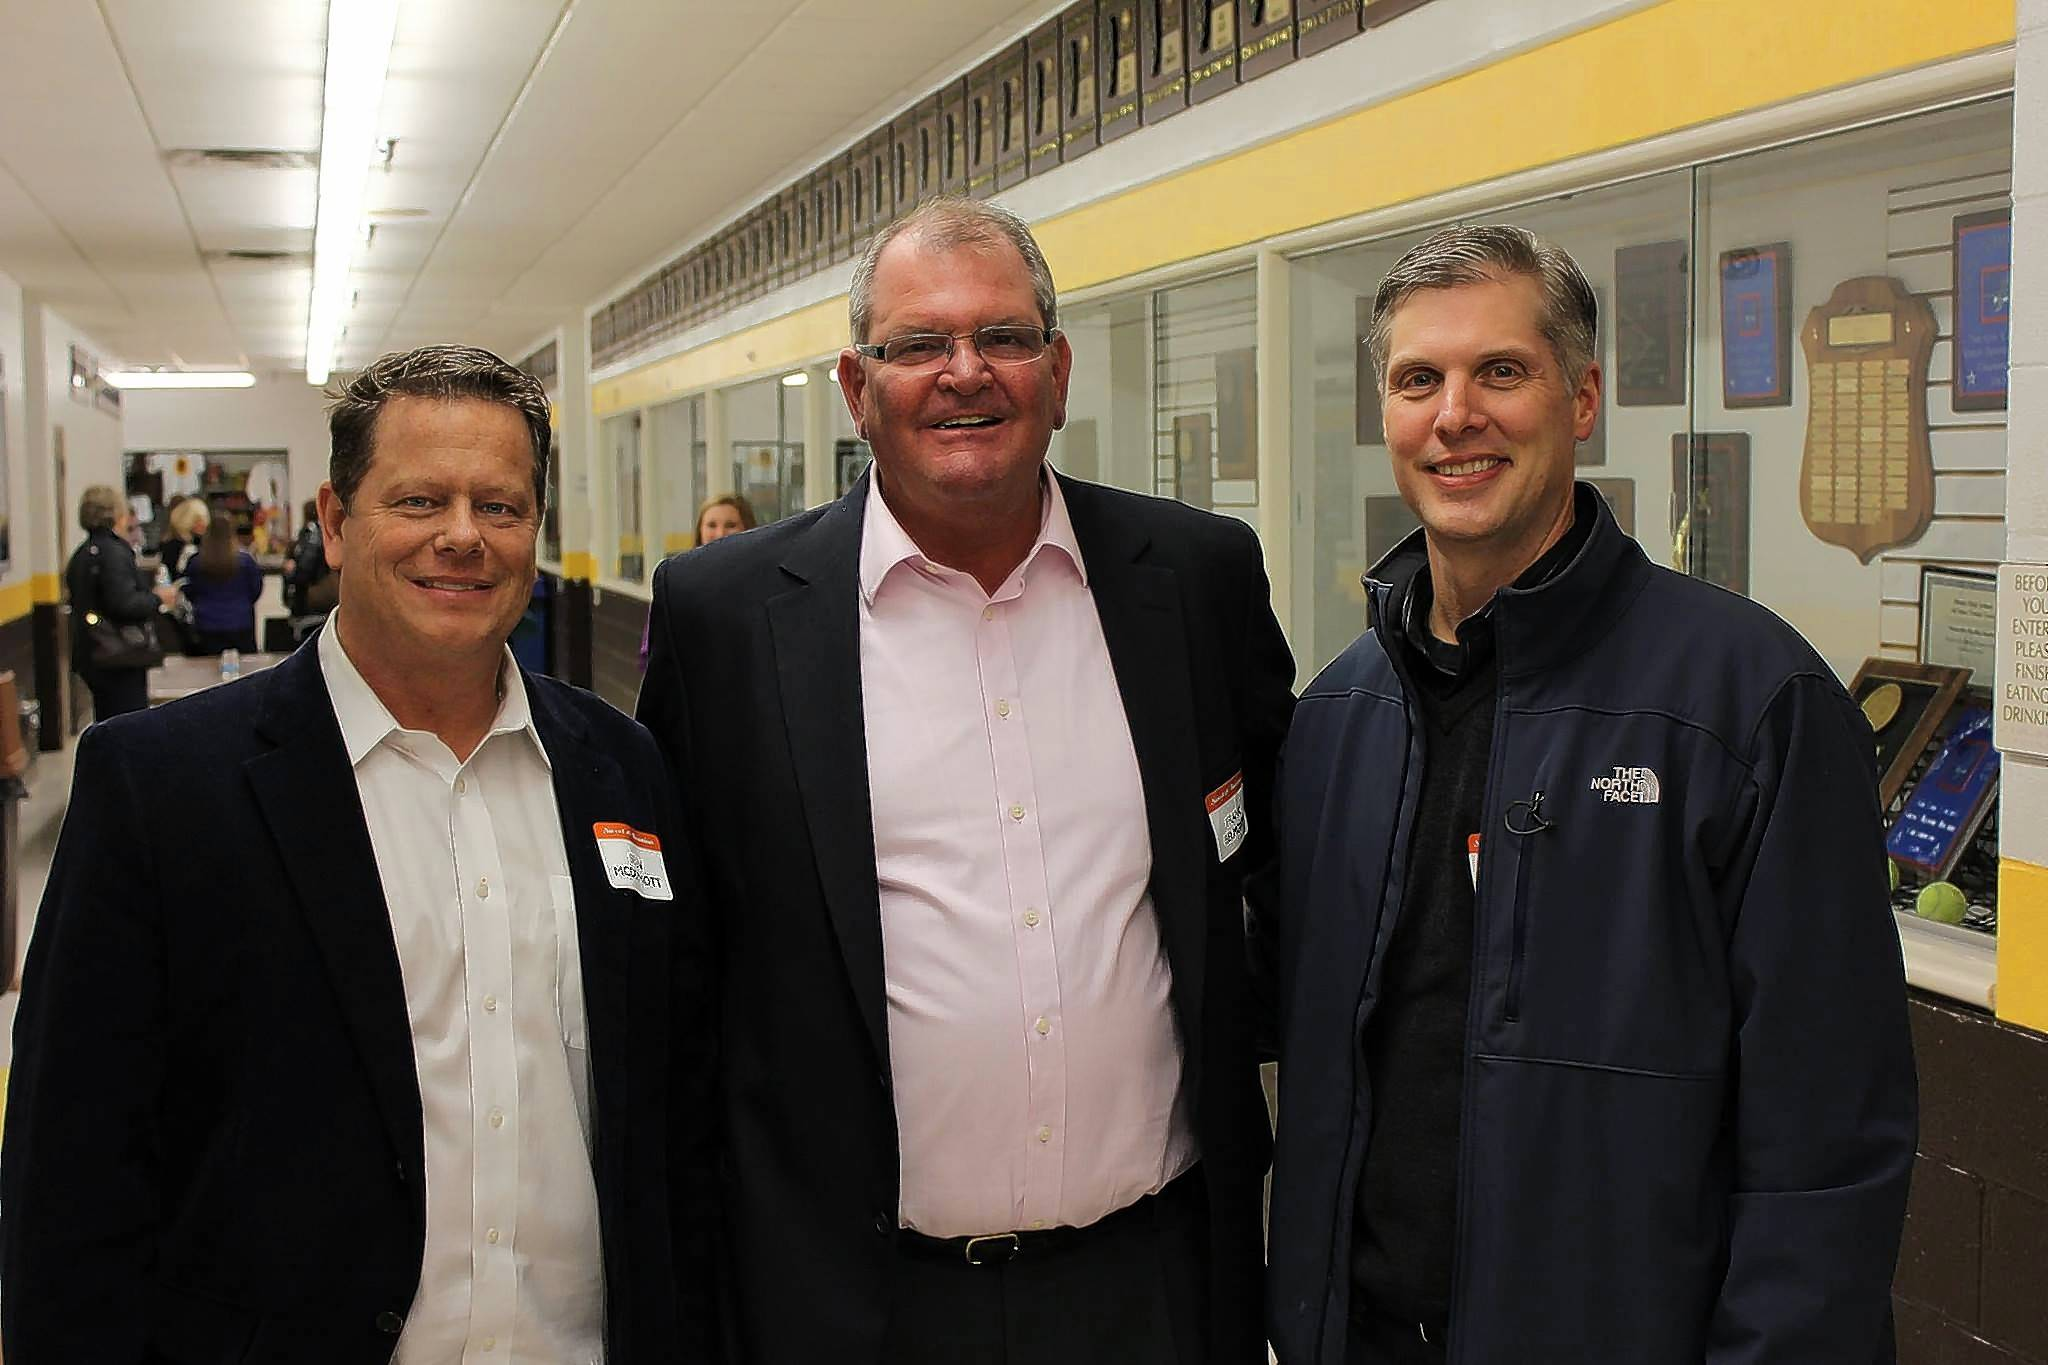 Late Carmel Catholic High School boys varsity basketball coach Frank Belmont with two players from the 1985-86 team that reached the Sweet 16, Sean McDermott, left, and Bill Graham. Belmont and many of his players gathered at a reunion in January 2015.